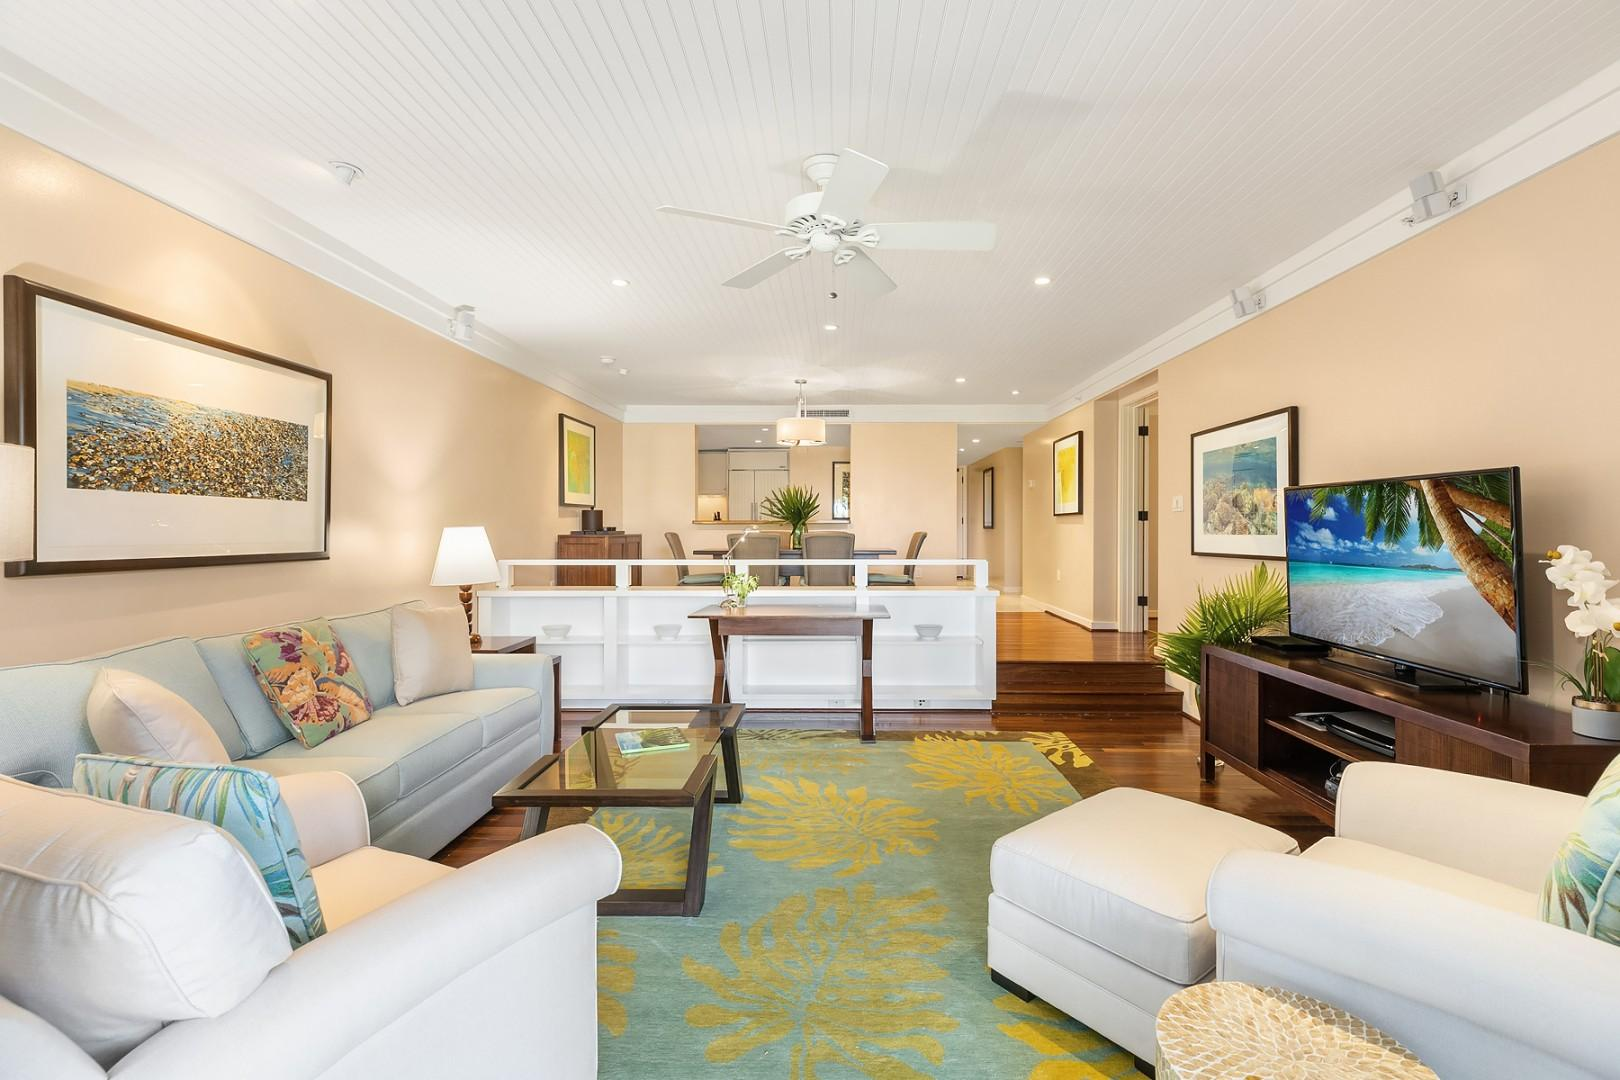 Dining area opens up into a large living space with comfortable seating.